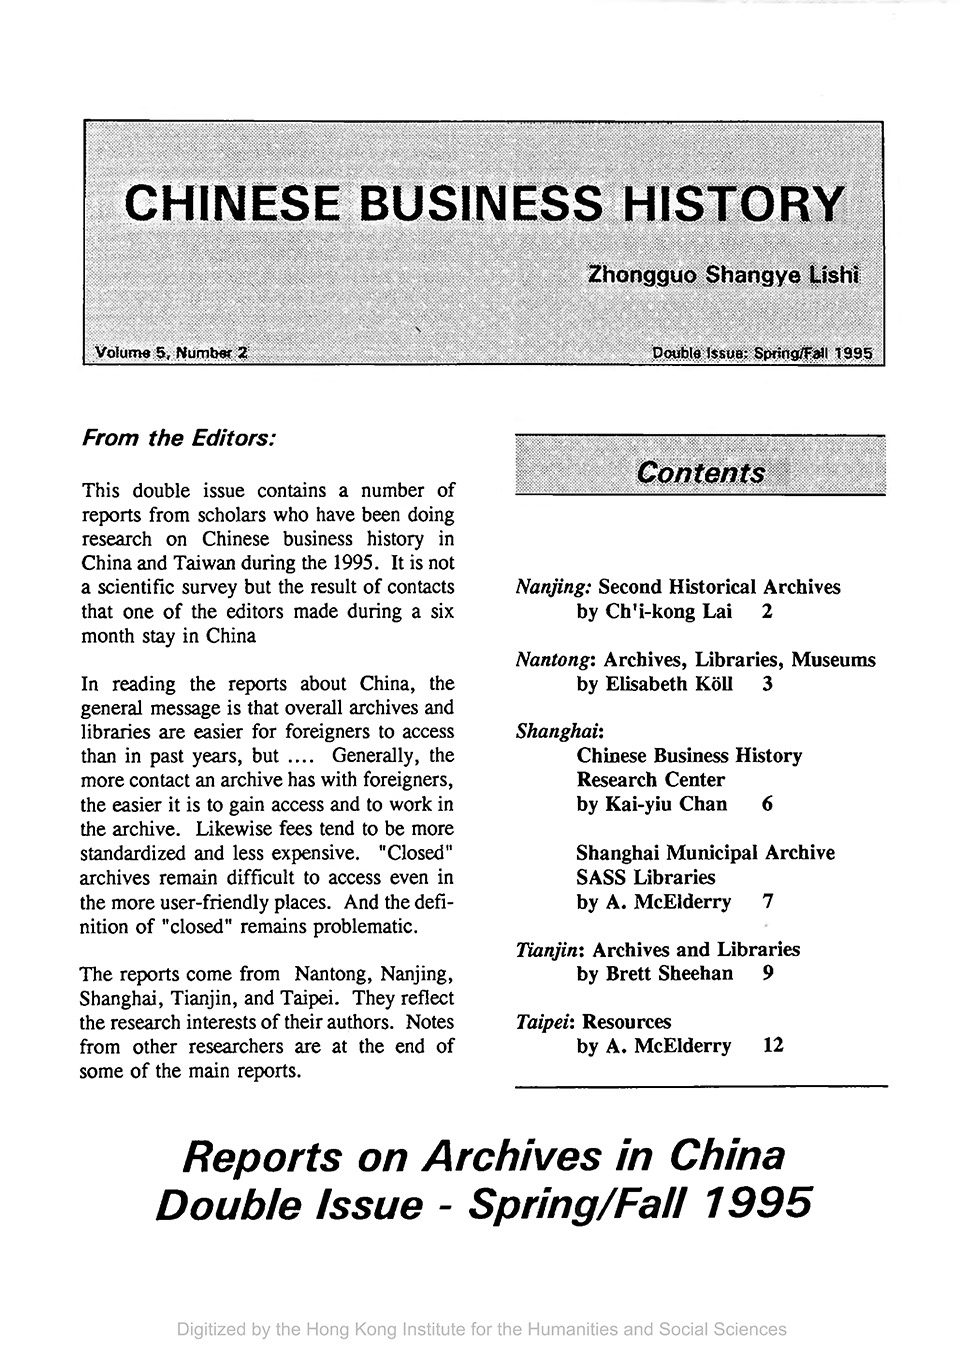 Cover of Chinese Business History Journal Volume 5, Number 2